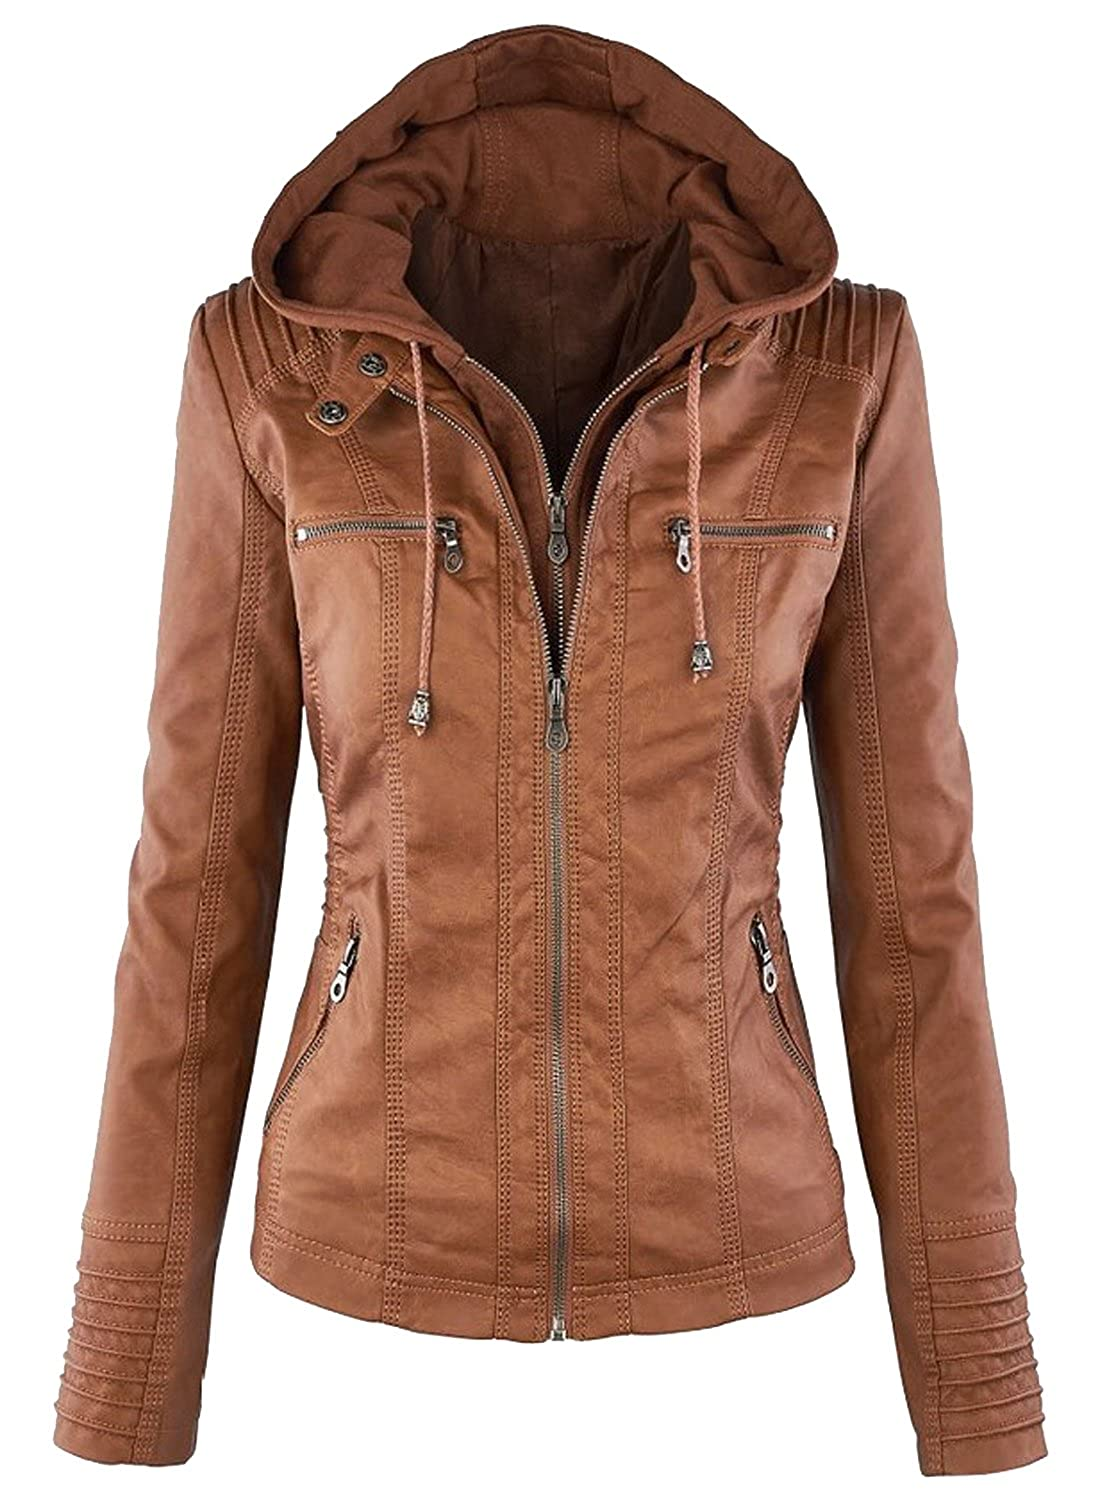 Azbro Women's Fashion Faux Leather Jacket with Detachable Hood